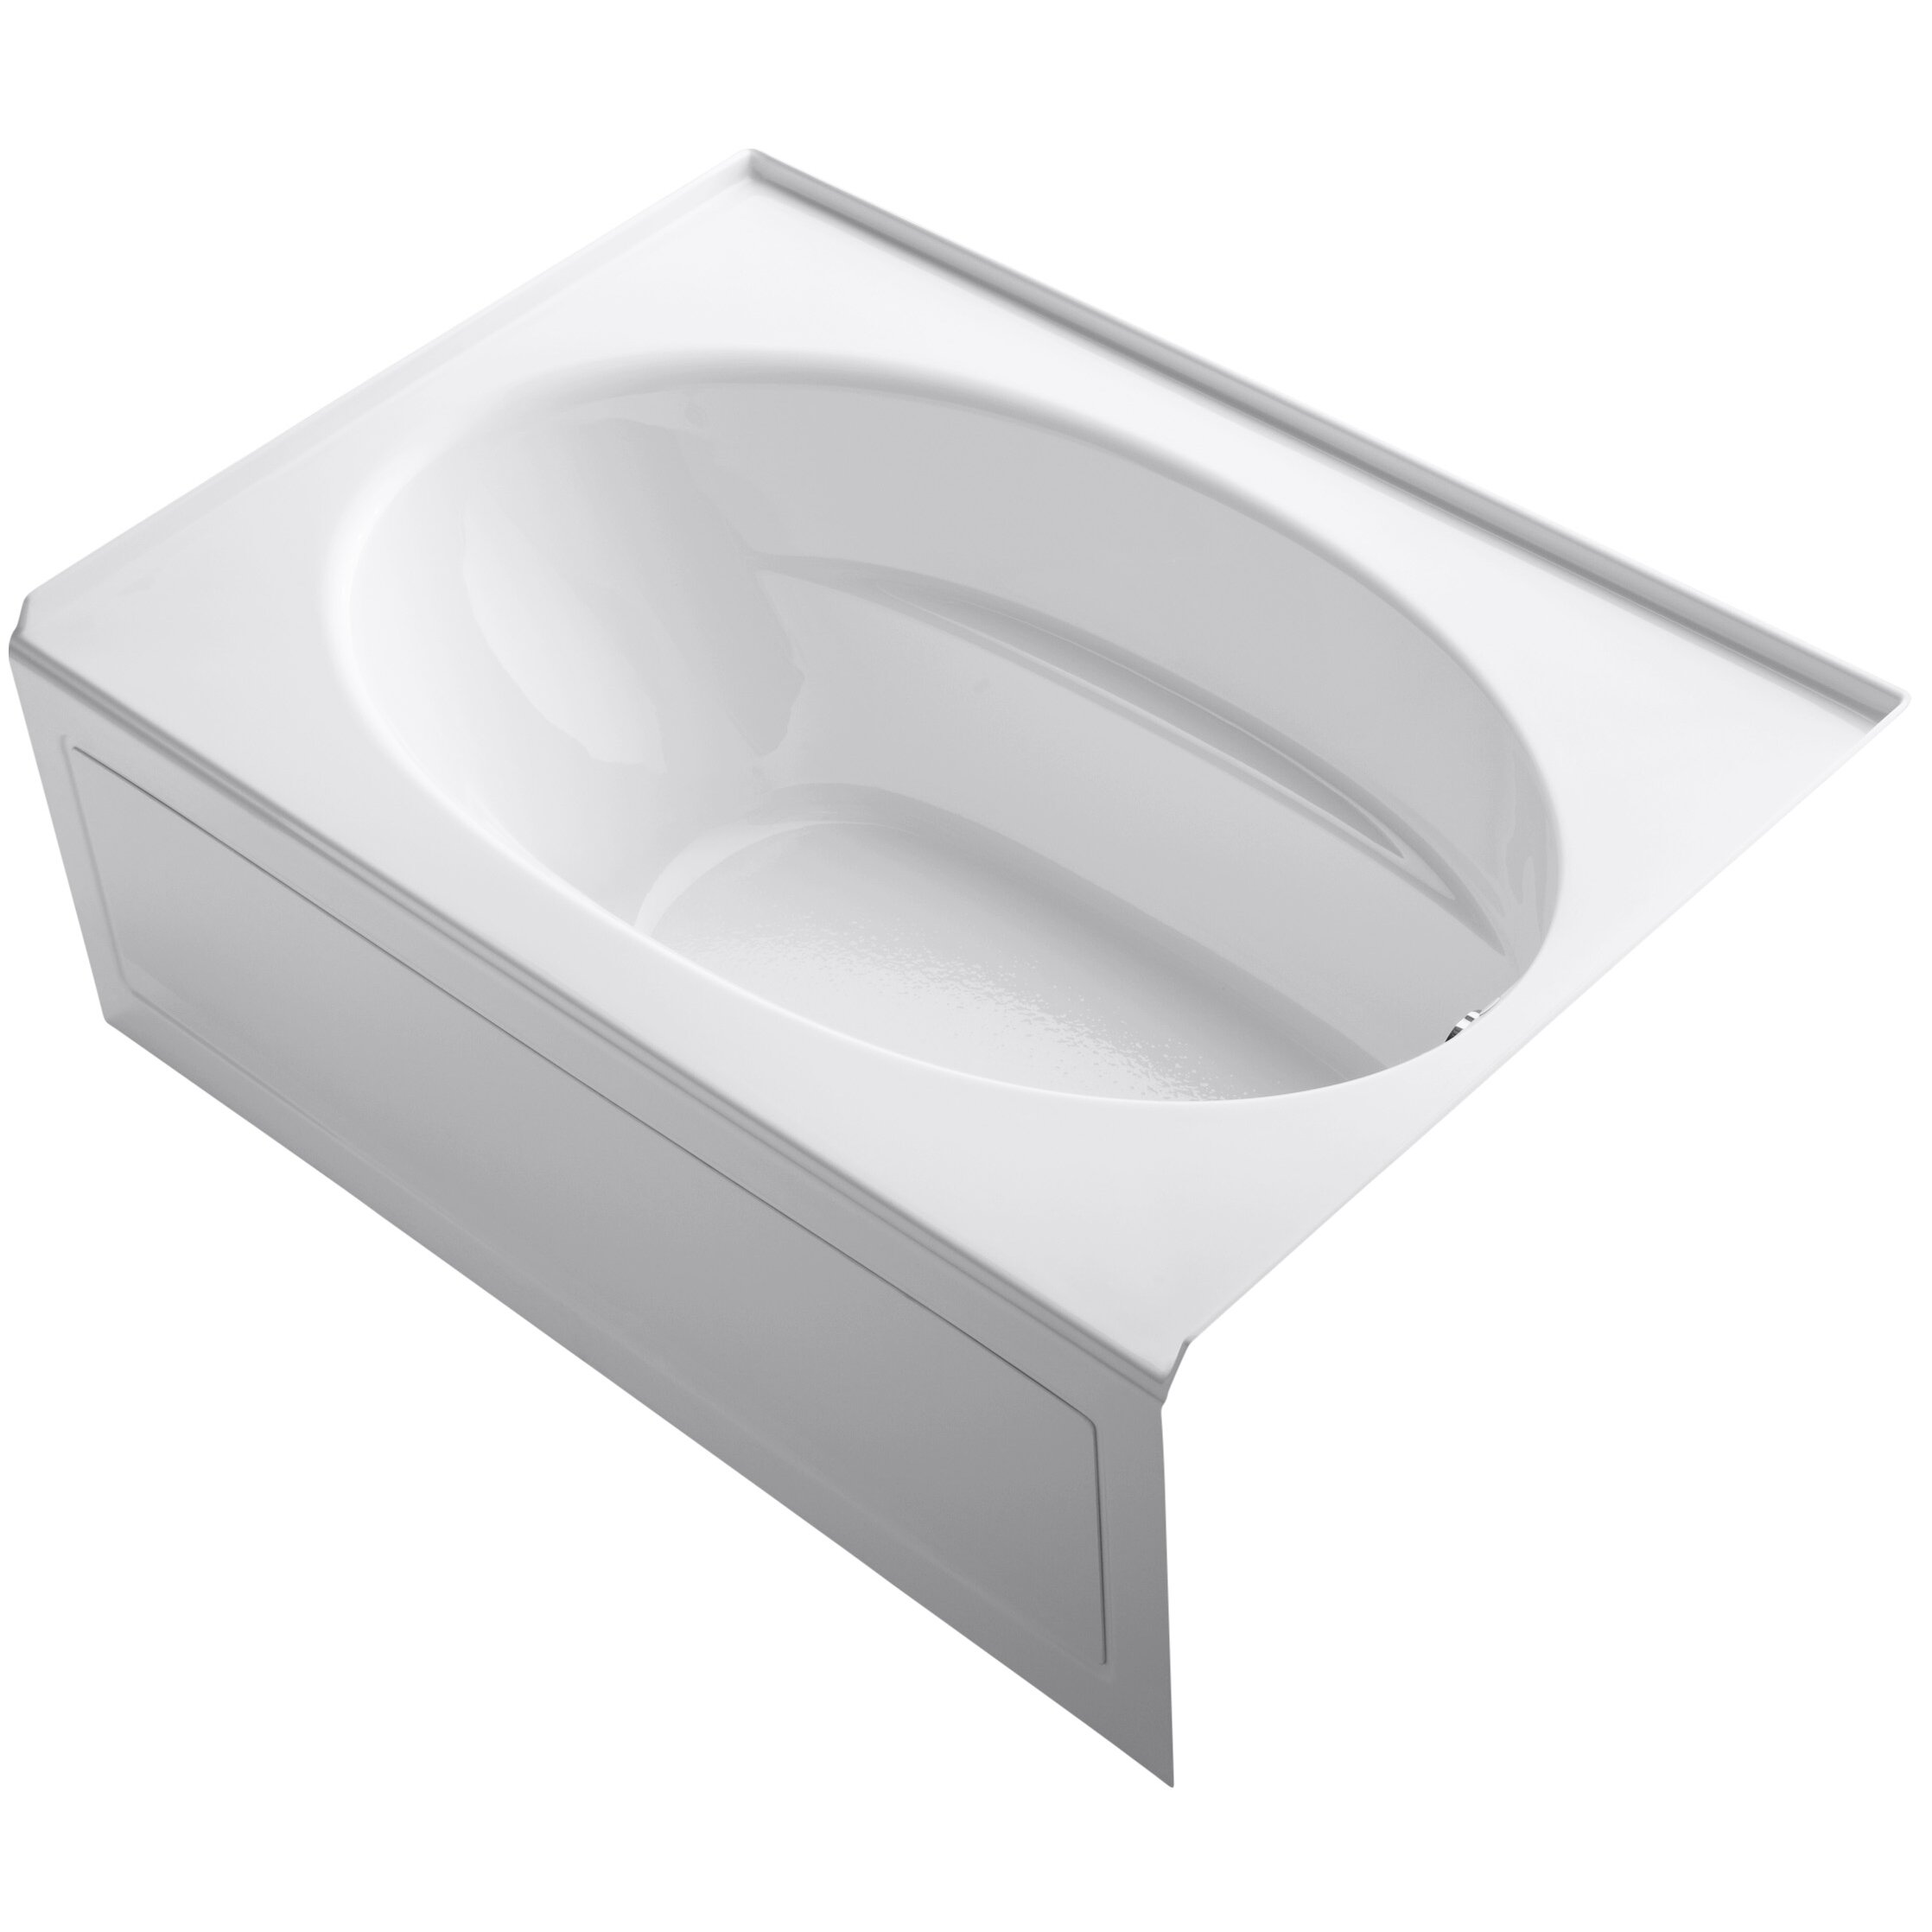 kohler windward 60 x 42 soaking bathtub reviews wayfair